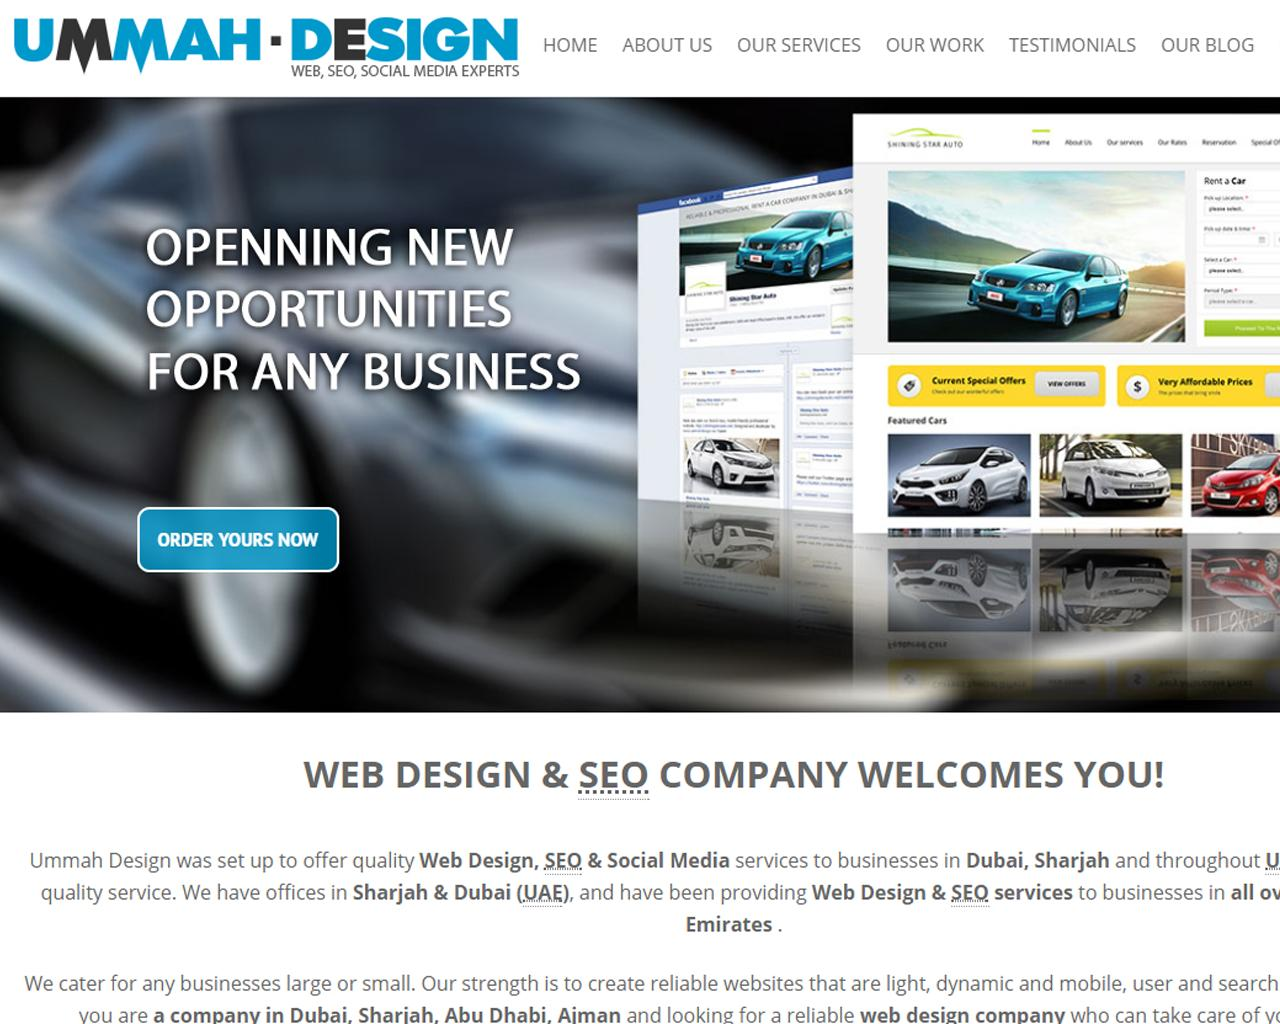 PSD to Responsive HTML5 and CSS3 by max-themes - 107630